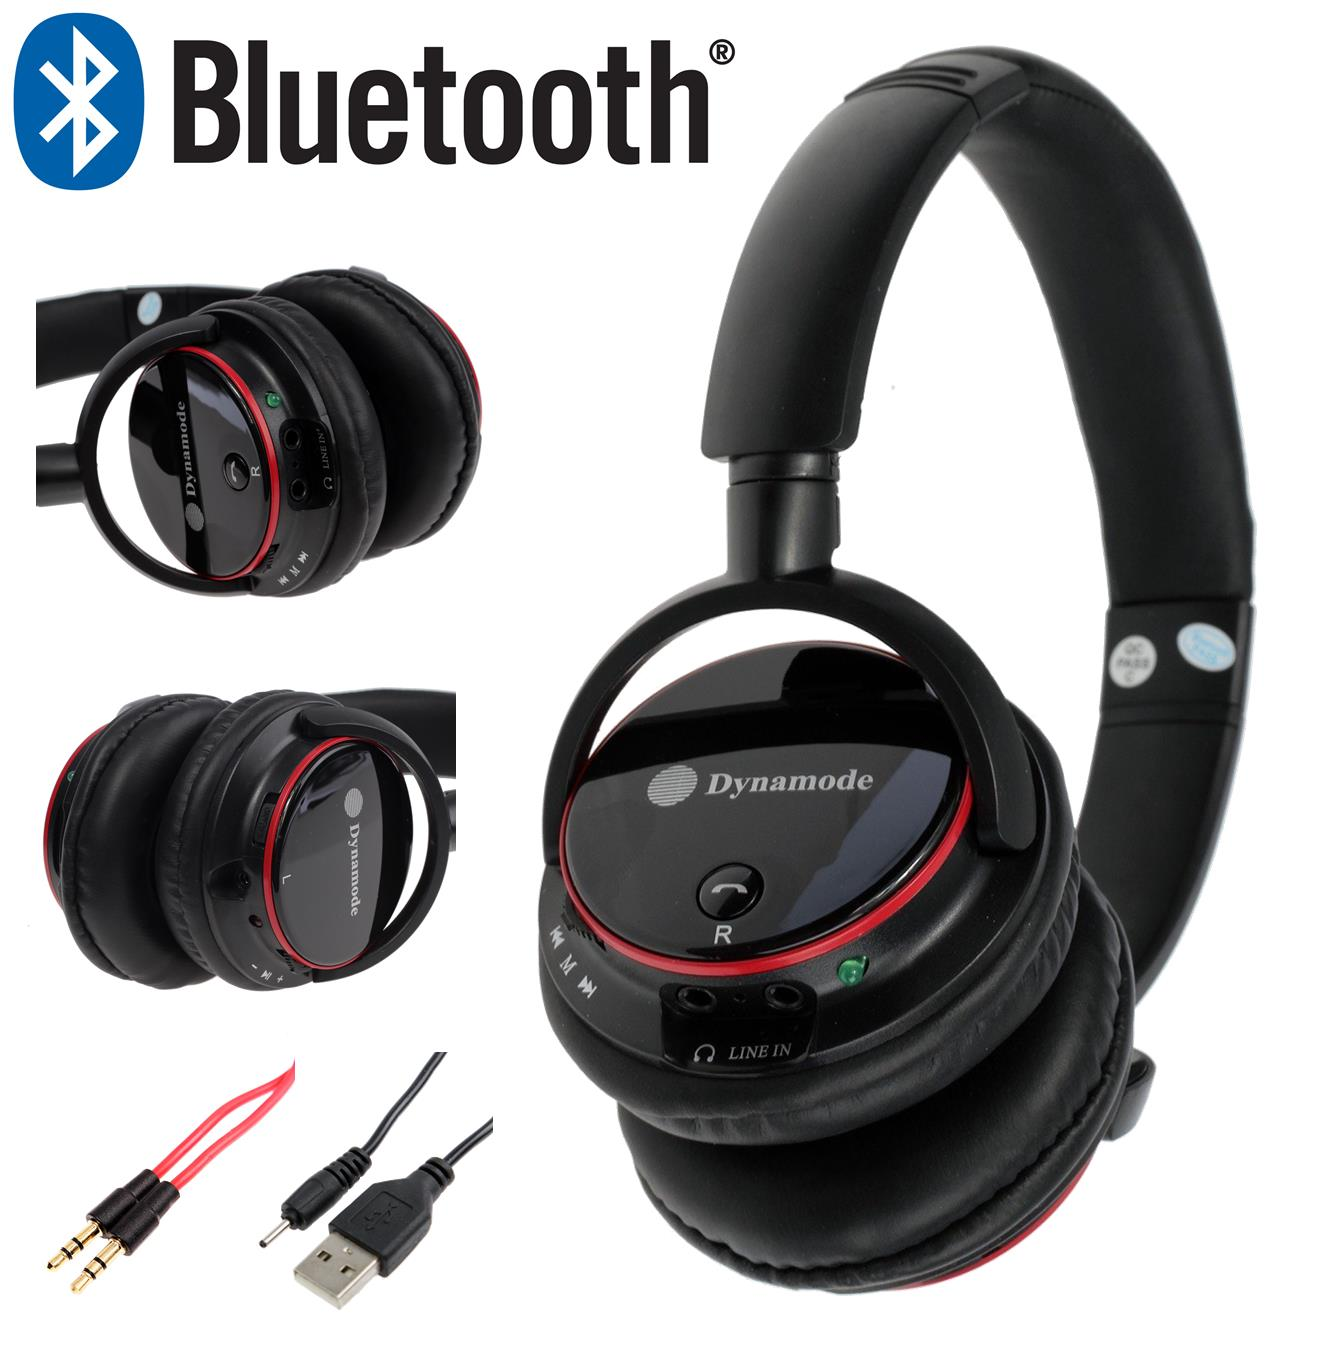 dynamode dh 101ltx bluetooth stereo headset for android. Black Bedroom Furniture Sets. Home Design Ideas